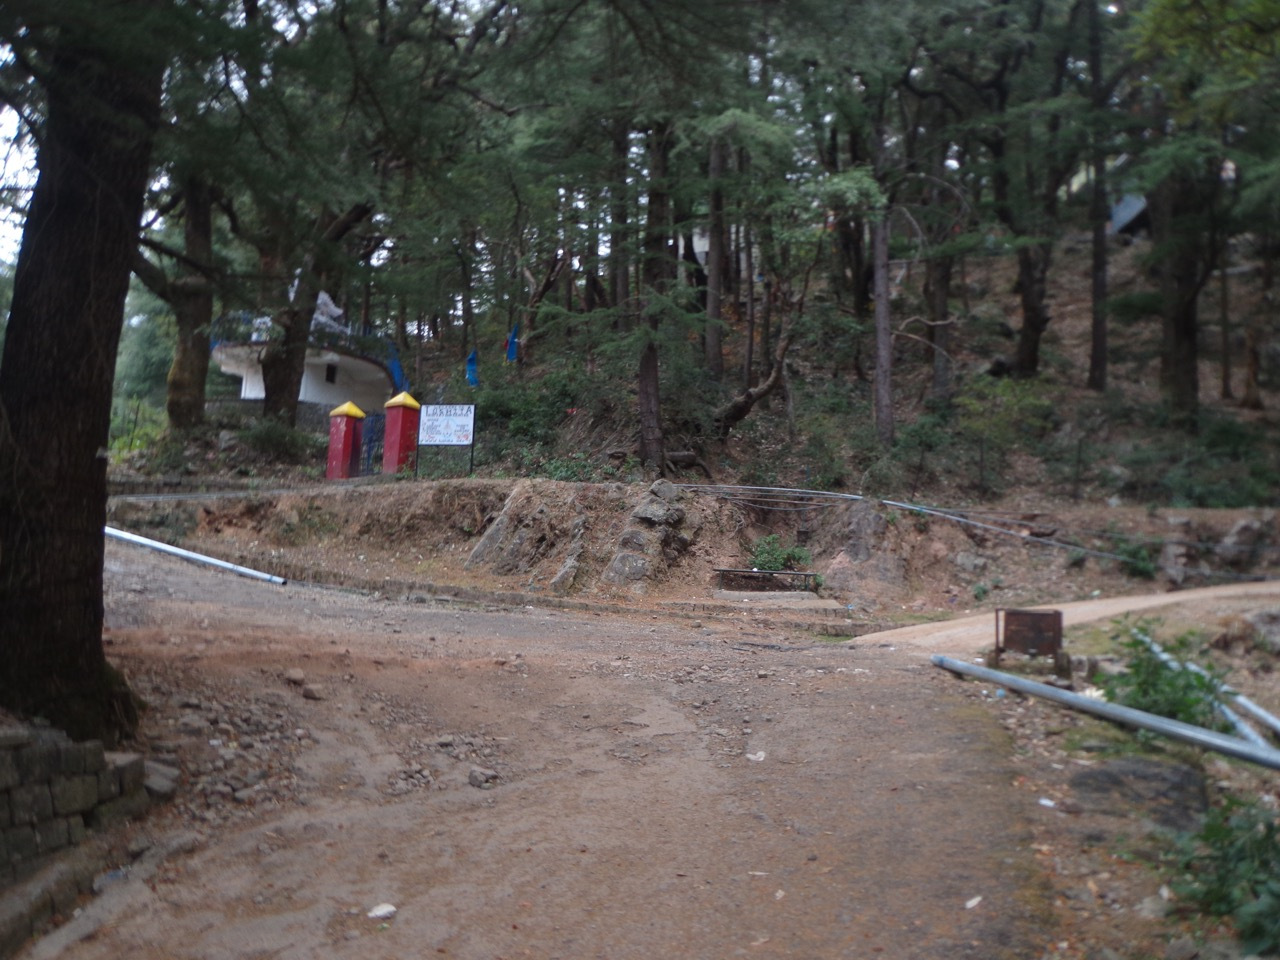 From the McLeod Ganj facing gate of Tushita Meditation centre, take the left trail. The metalled road on the right also reaches Dharamkot but it would take longer.